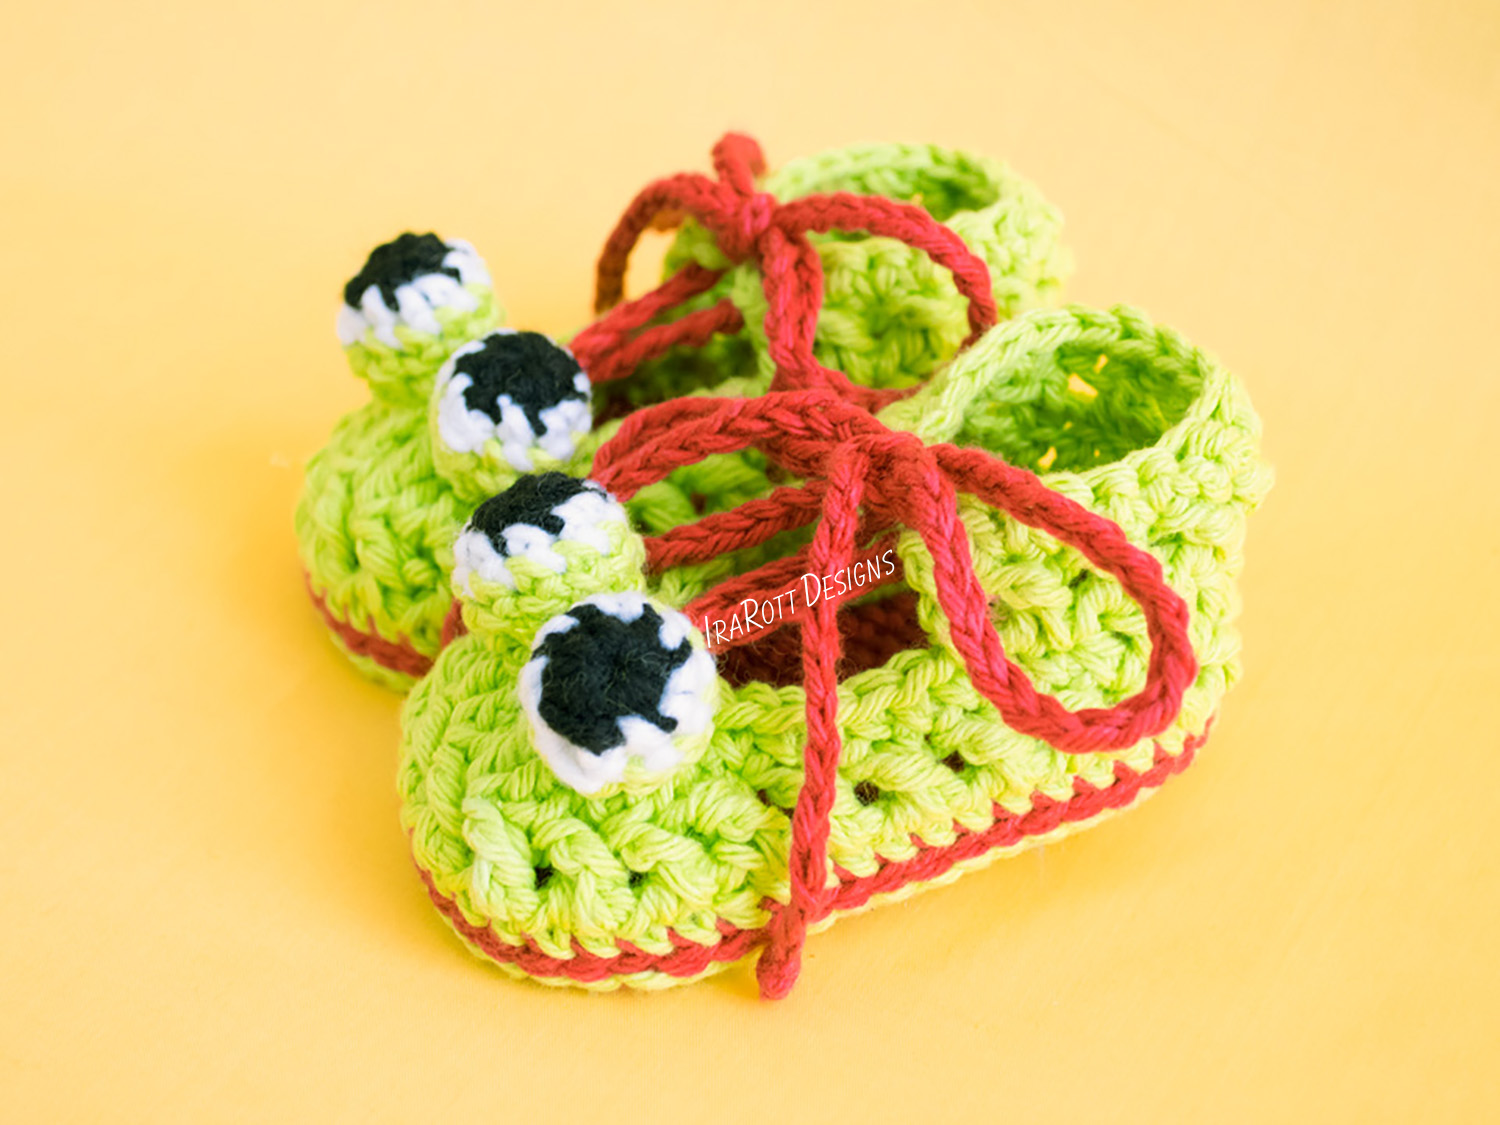 Crochet Animal Baby Booties Pattern : Crazy Eyes Double Sole Baby Frog Booties Crochet Pattern ...